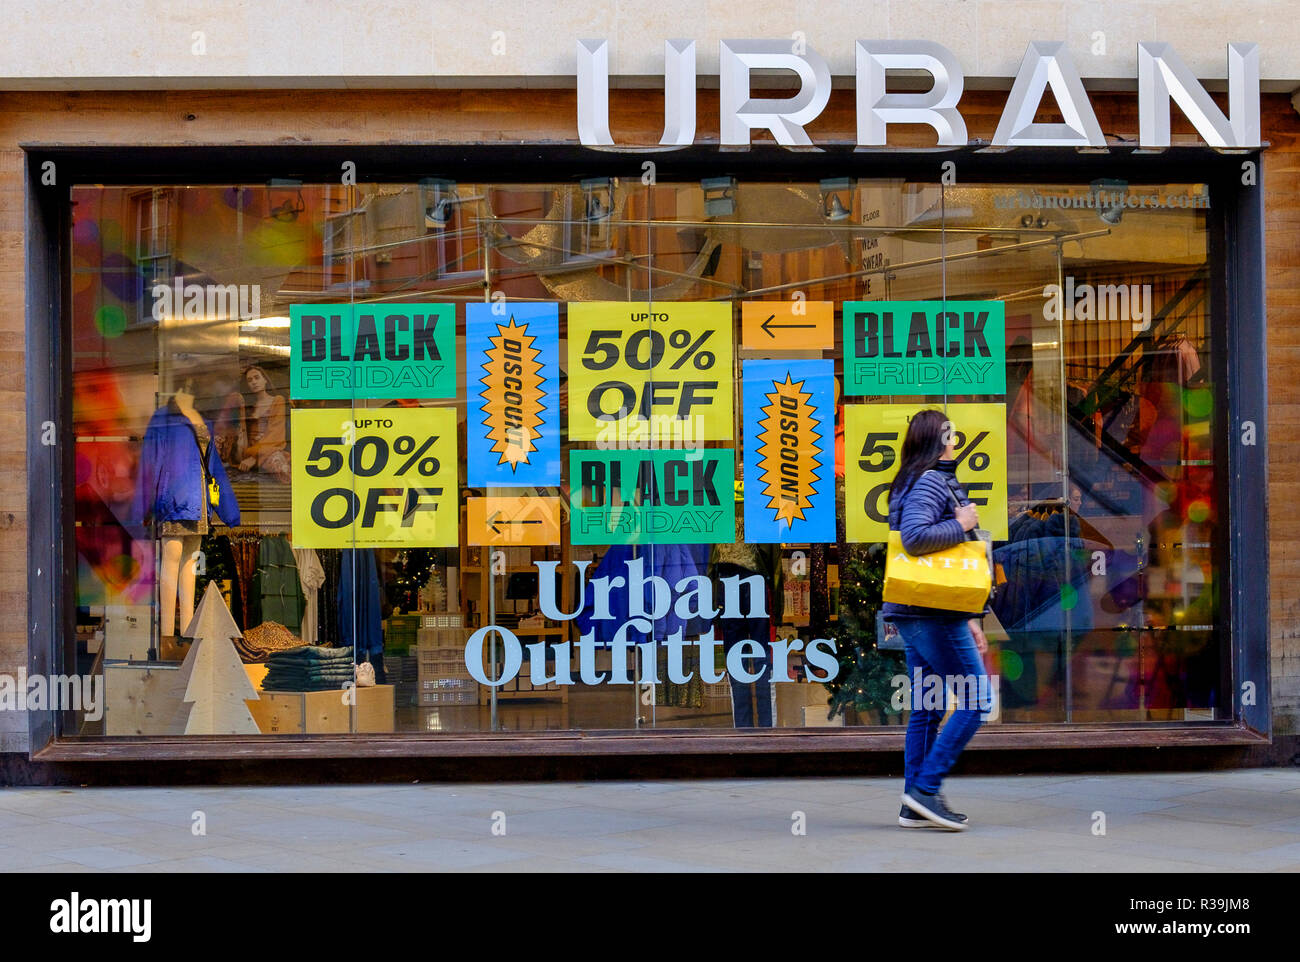 17dce185 Bath, UK. 22nd November, 2018. With Black Friday sales due to start ...